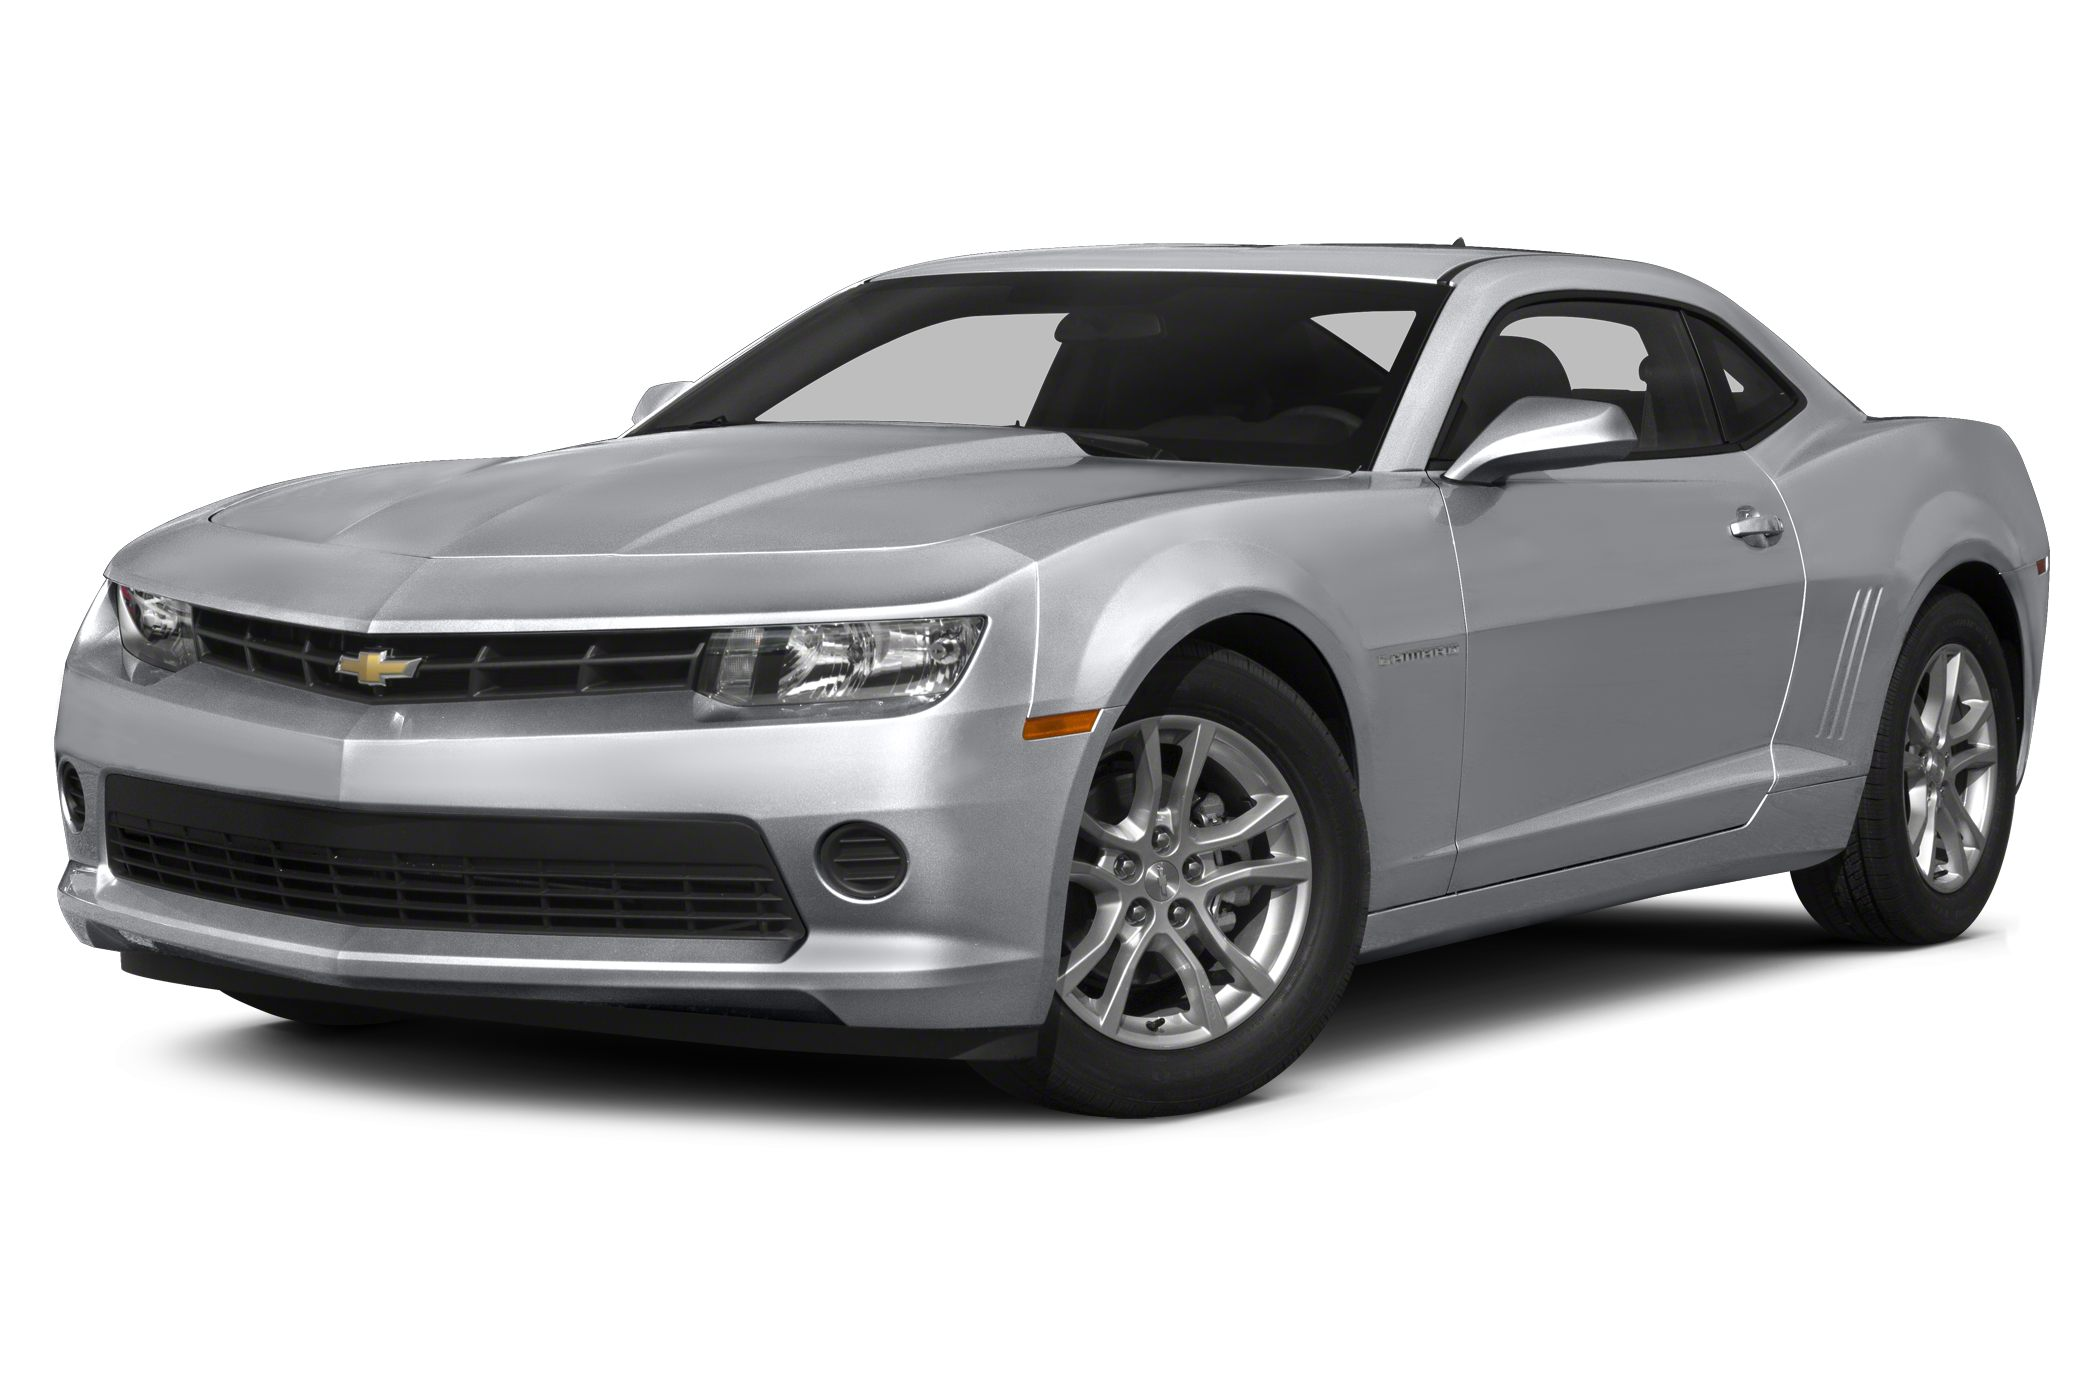 2015 Chevrolet Camaro 2LS Coupe for sale in Key West for $26,140 with 0 miles.